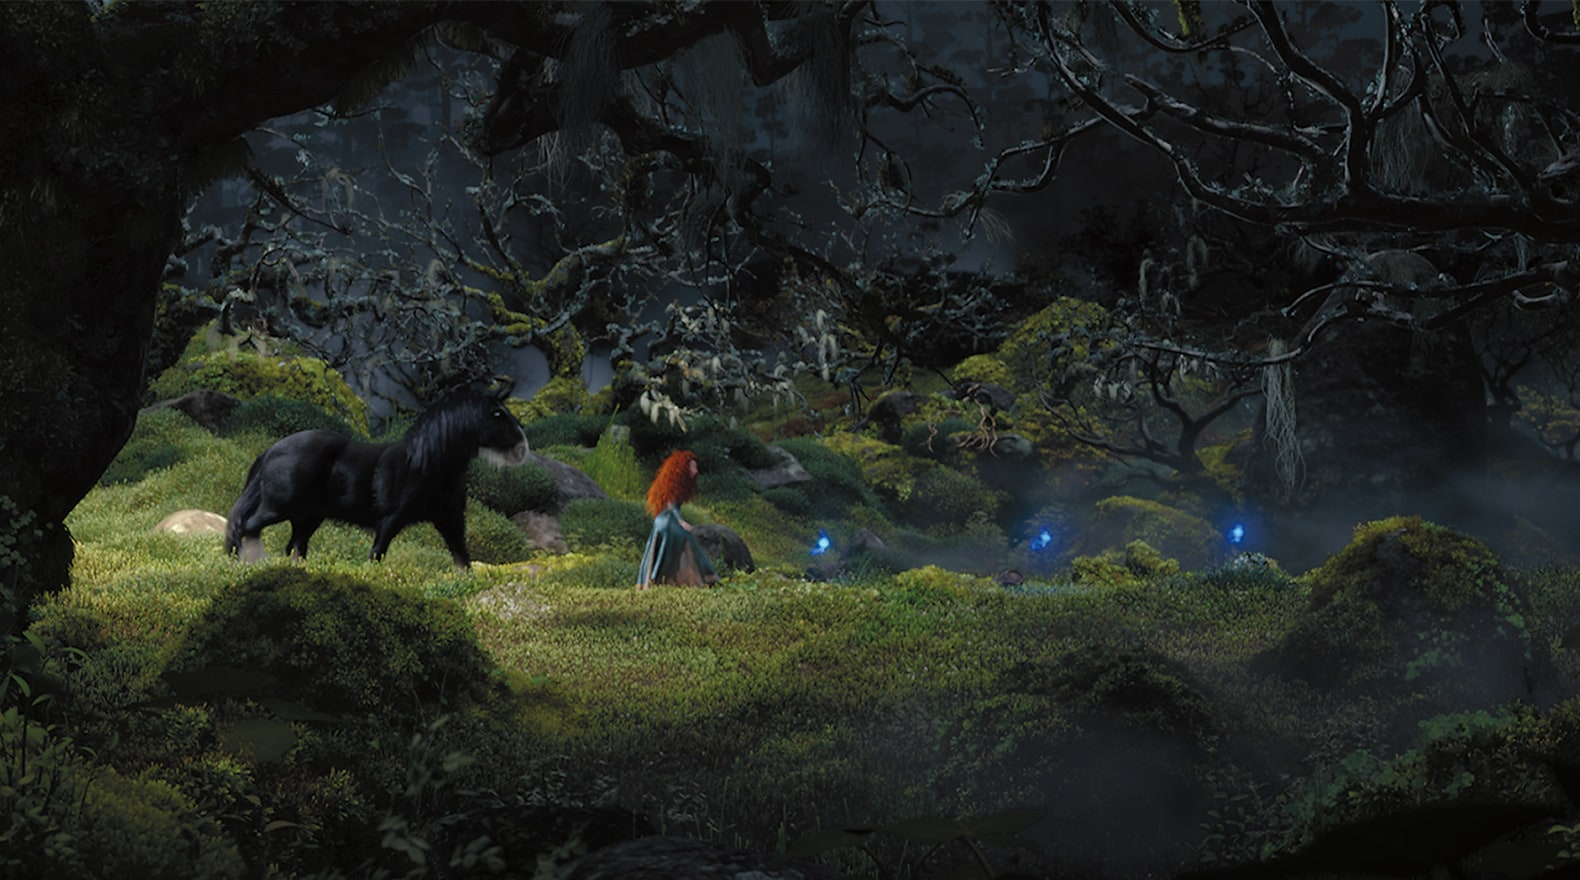 Always curious Merida lets the wisps guide her through the forest.